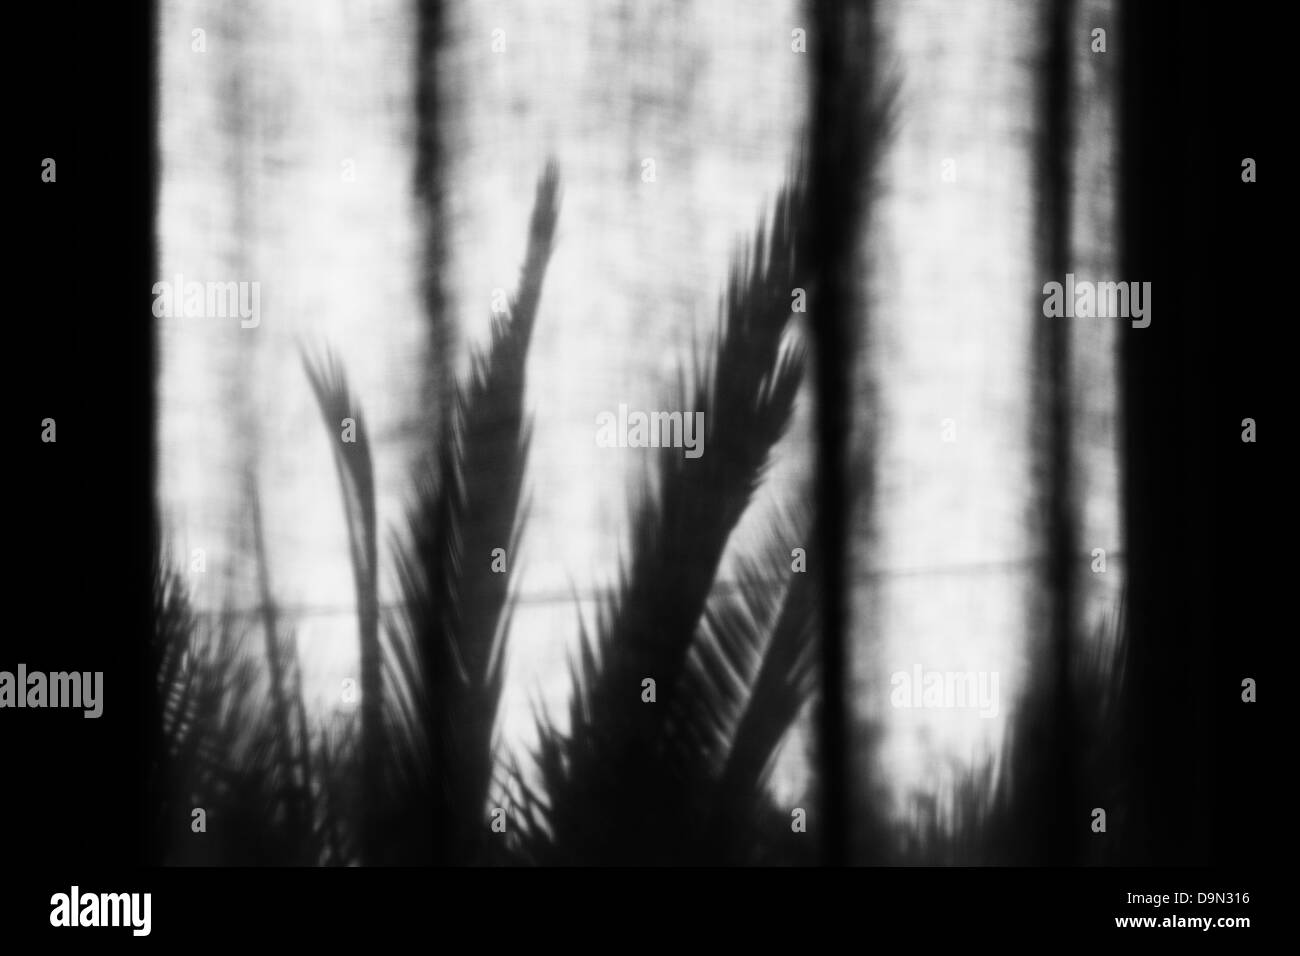 Monochrome image of palm tree shadows on a curtain - Stock Image